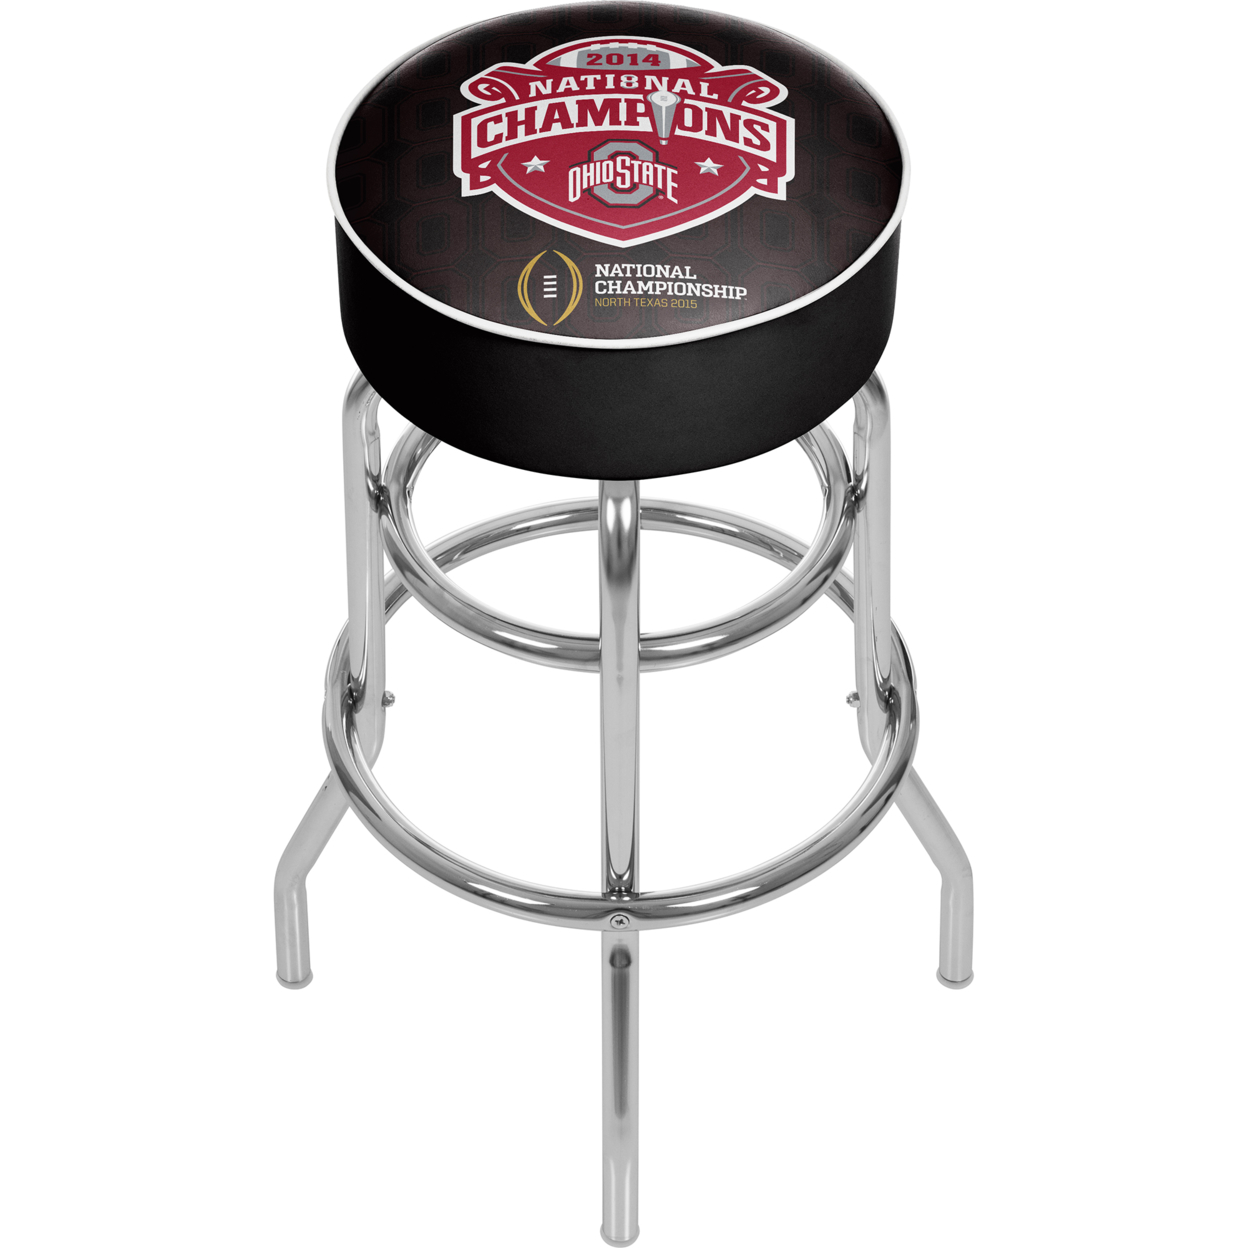 Ohio State National Champions Chrome Bar Stool with Swivel - Fade